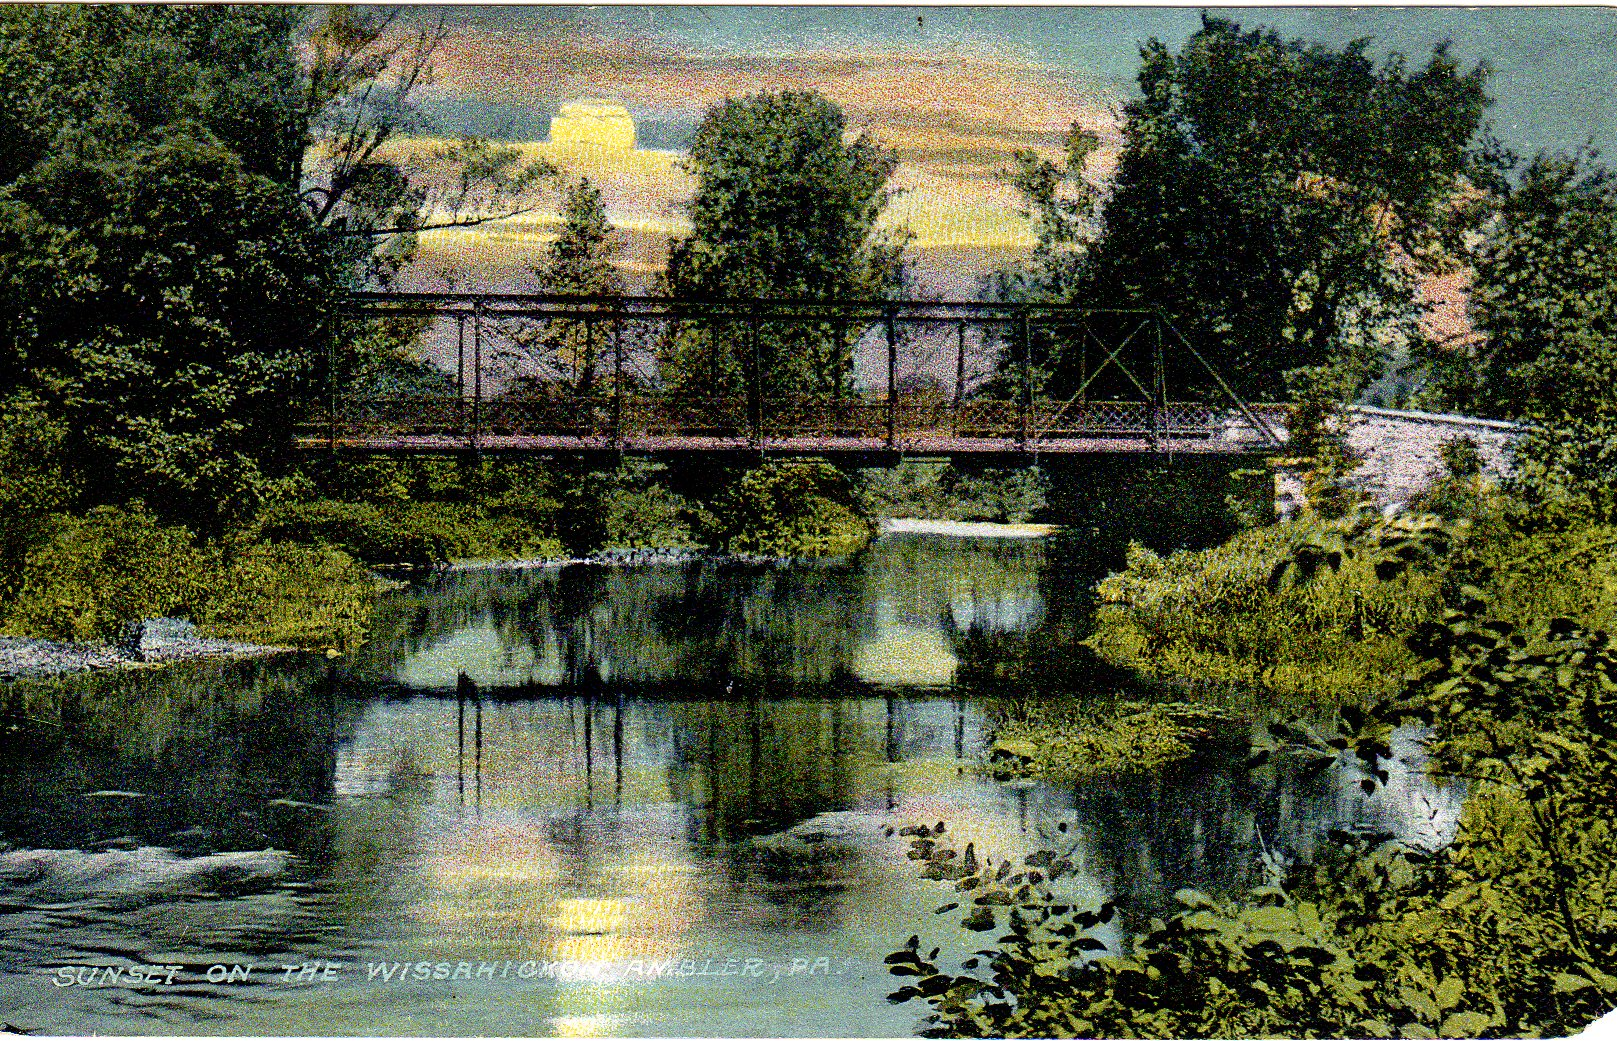 Post Card Collection (E Simon)_2682_20_Sunset on the Wissahickon, Ambler, Pa_1912